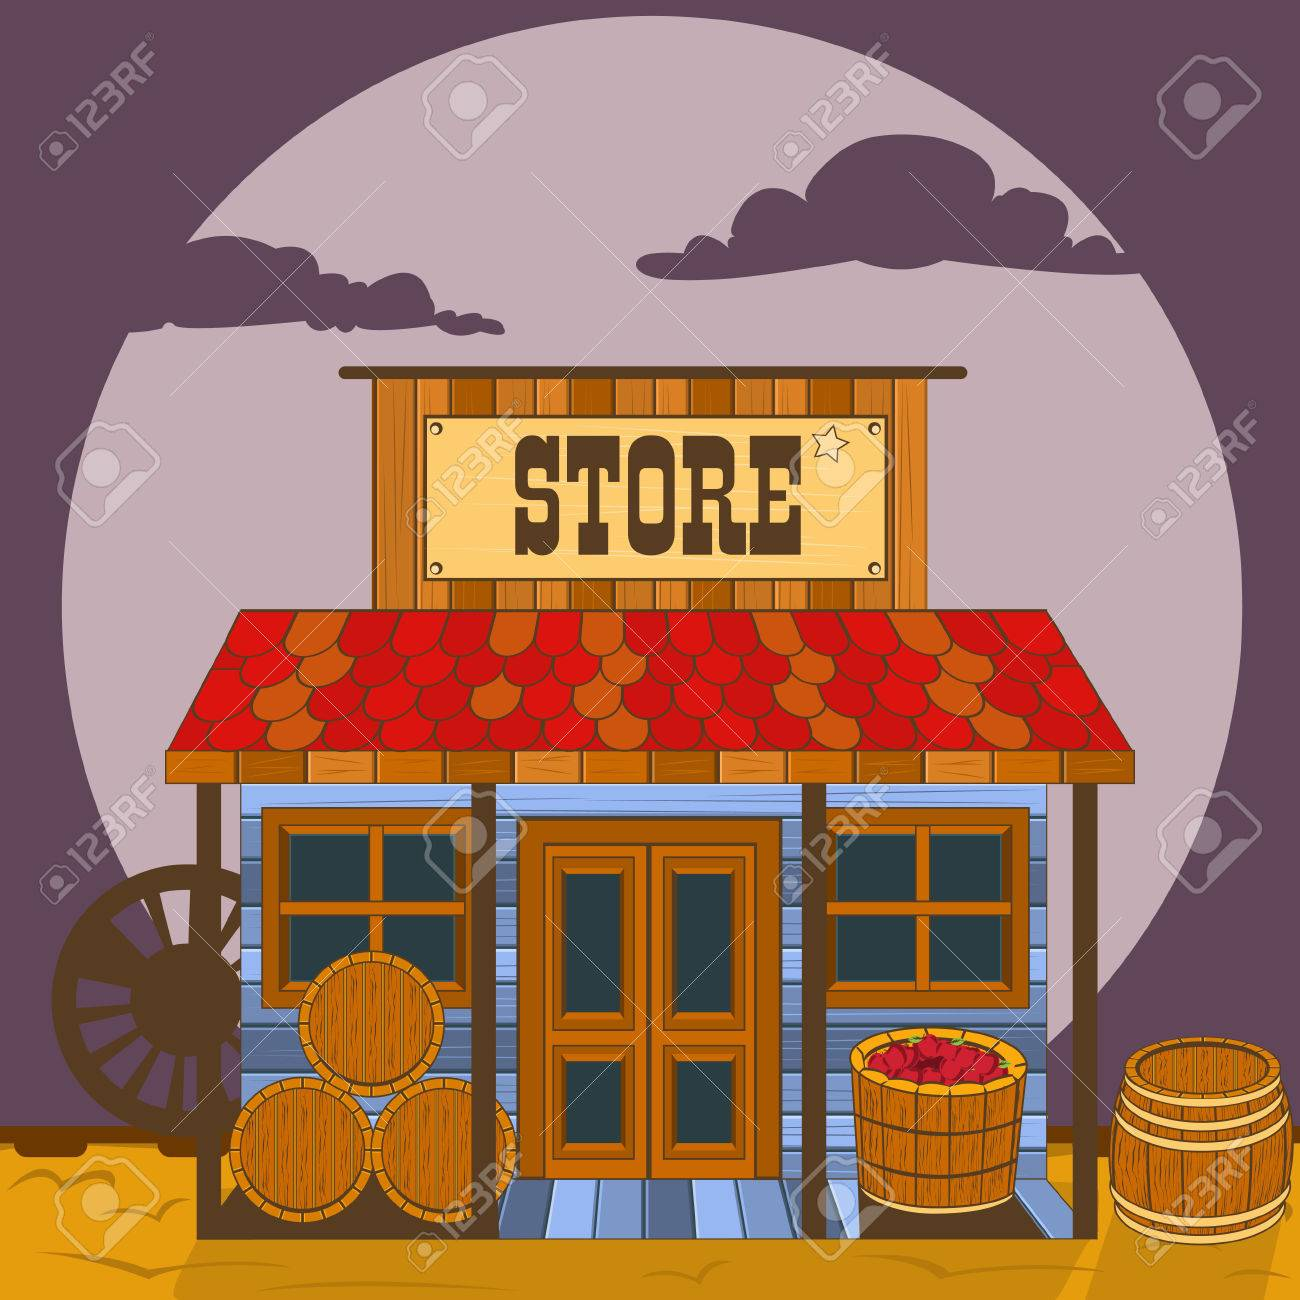 Vector illustration of an old west building - store. - 50254668